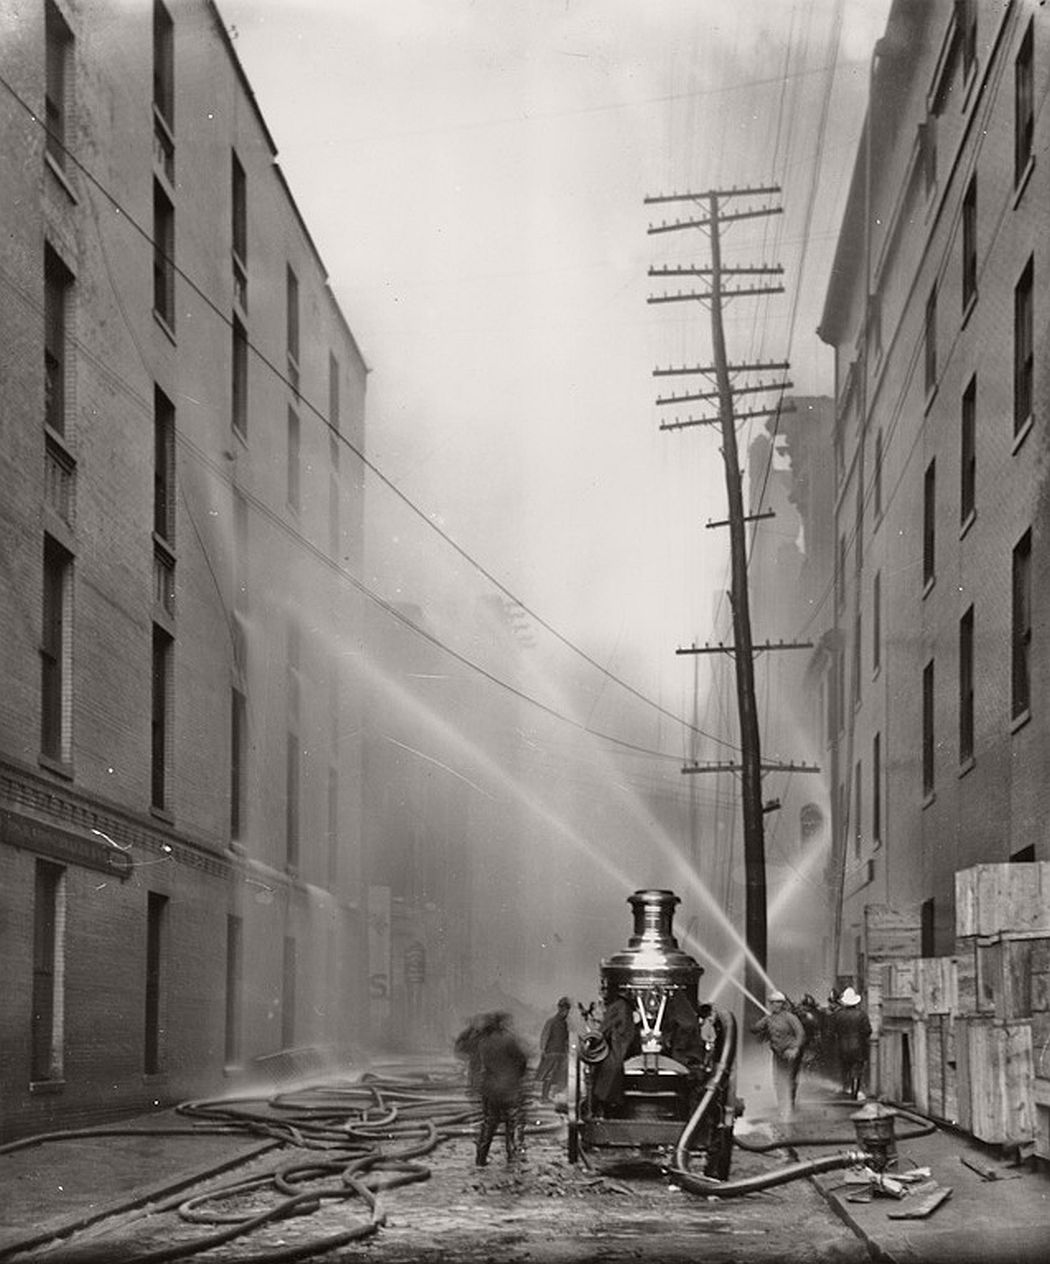 Firefighters spraying water on buildings along German St. during 1904 fire